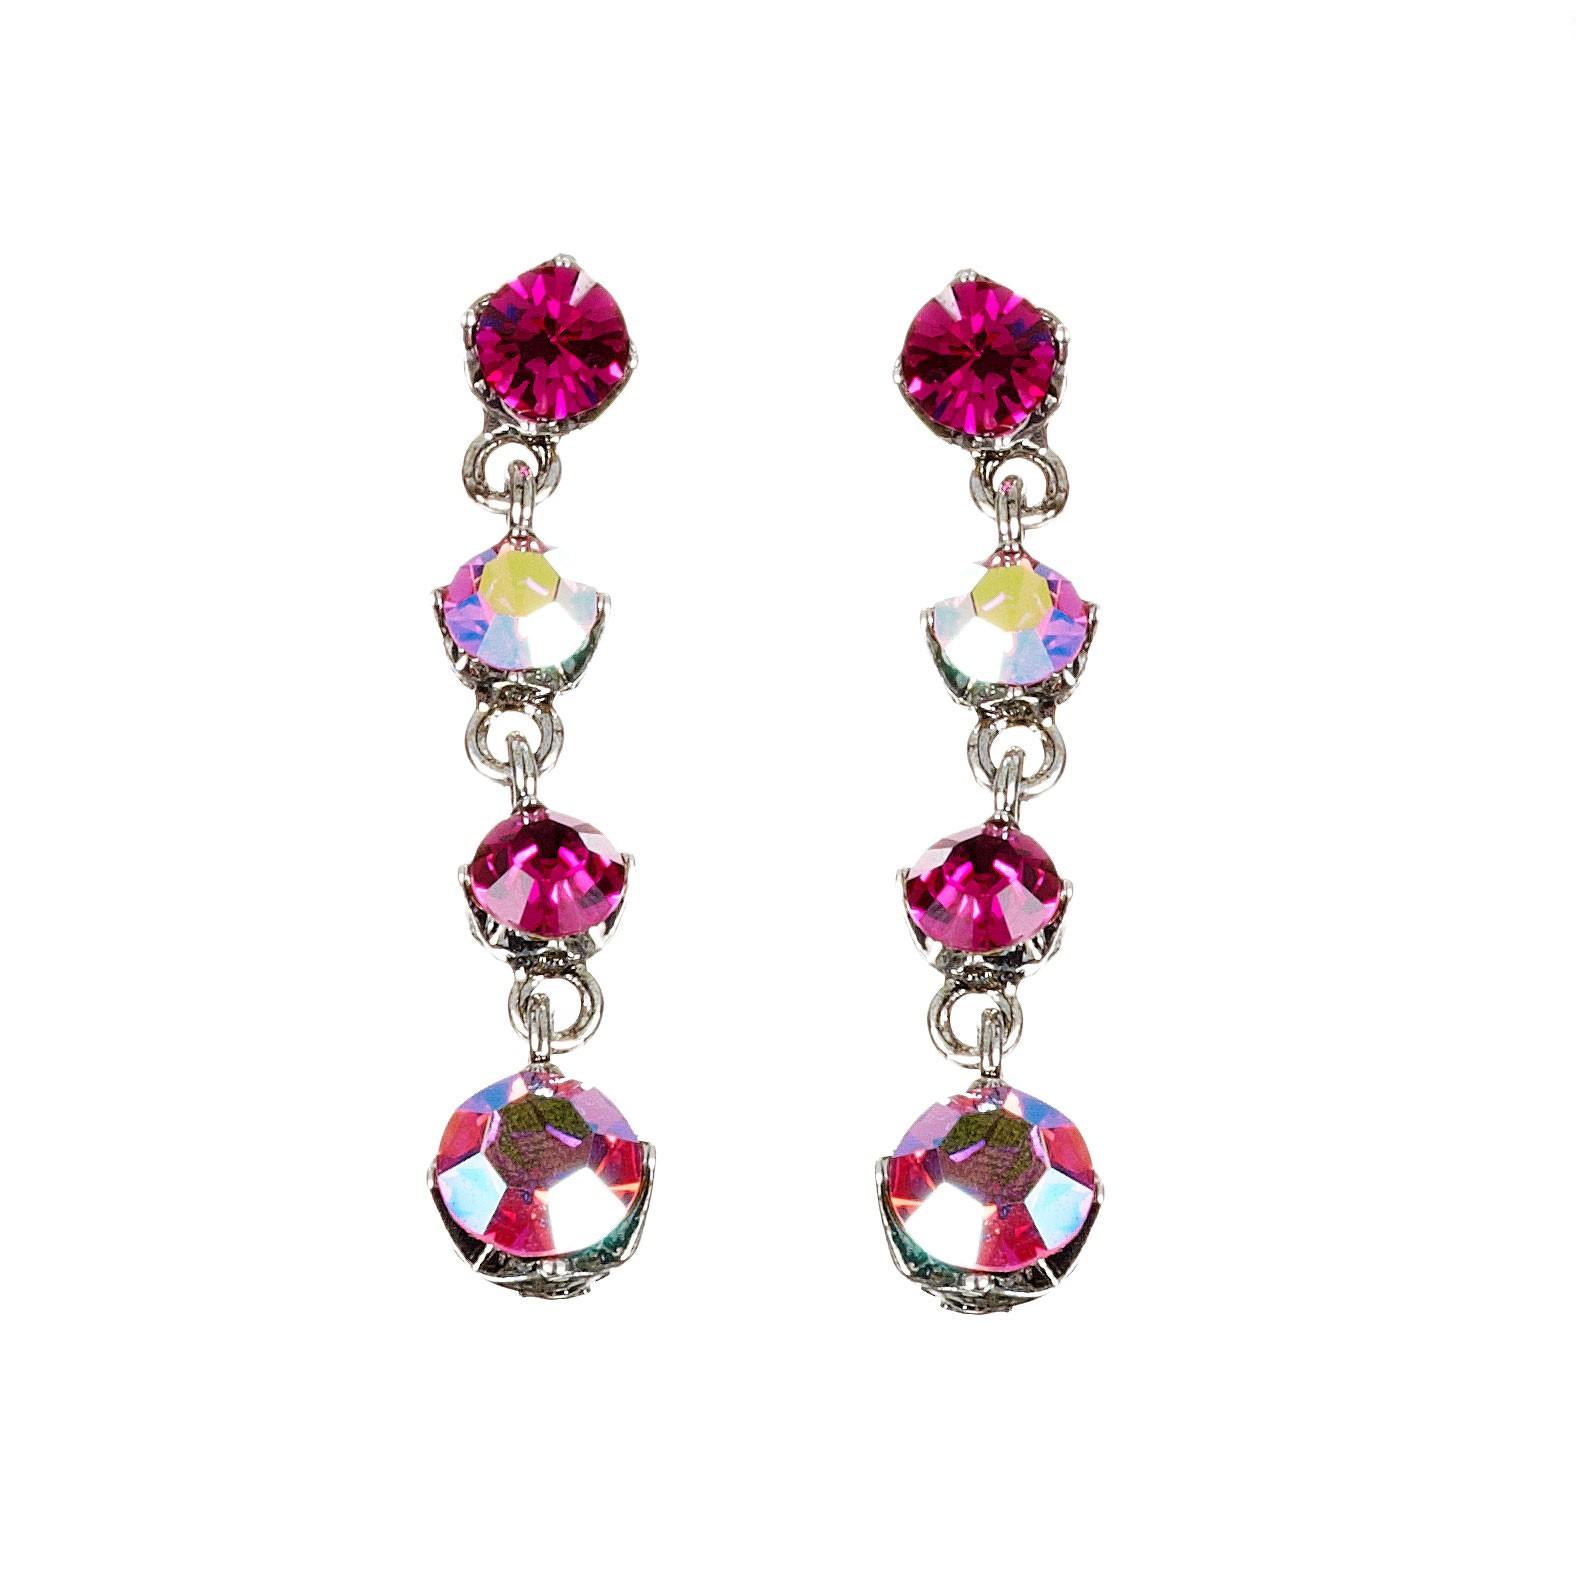 Swarovski Crystal Pink Crystal Necklace and Earrings Set